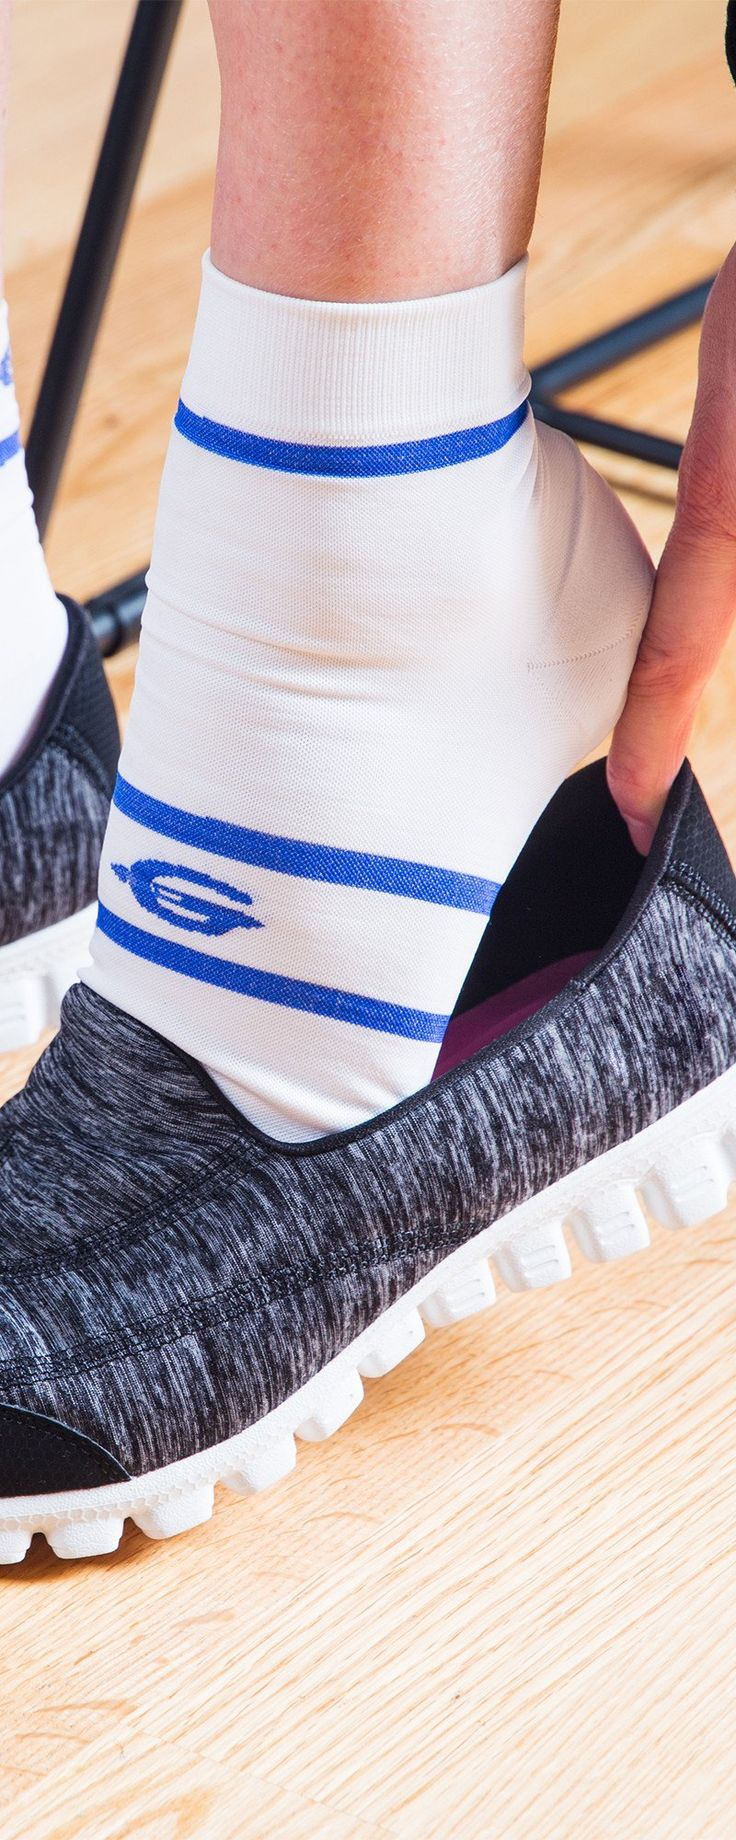 All the benefits of compression socks, plus a few more. Padded insoles cushion and absorb shock, while sweat-wicking silver fibers keep feet dry.